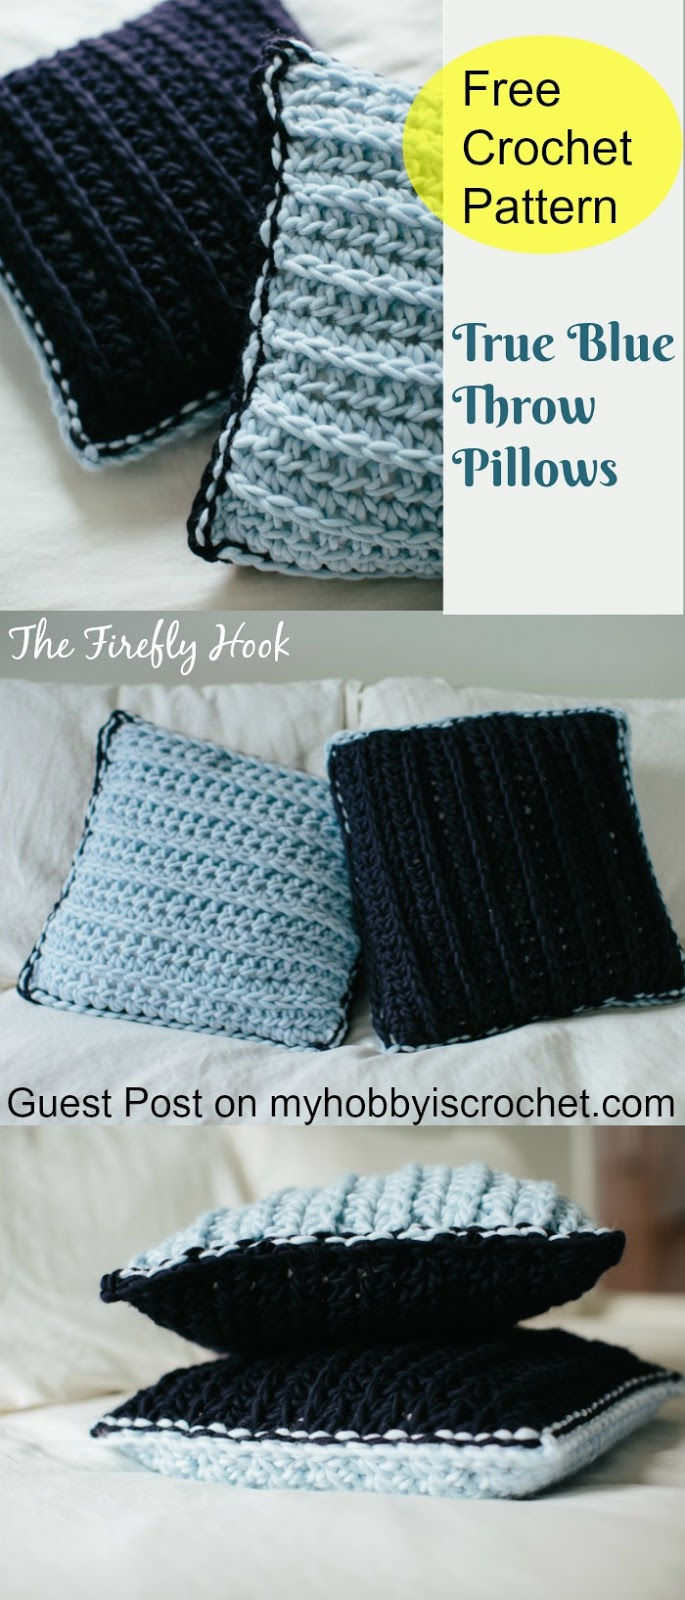 My hobby is crochet true blue throw pillows free crochet true blue throw pillows free crochet pattern from guest contributor bankloansurffo Gallery